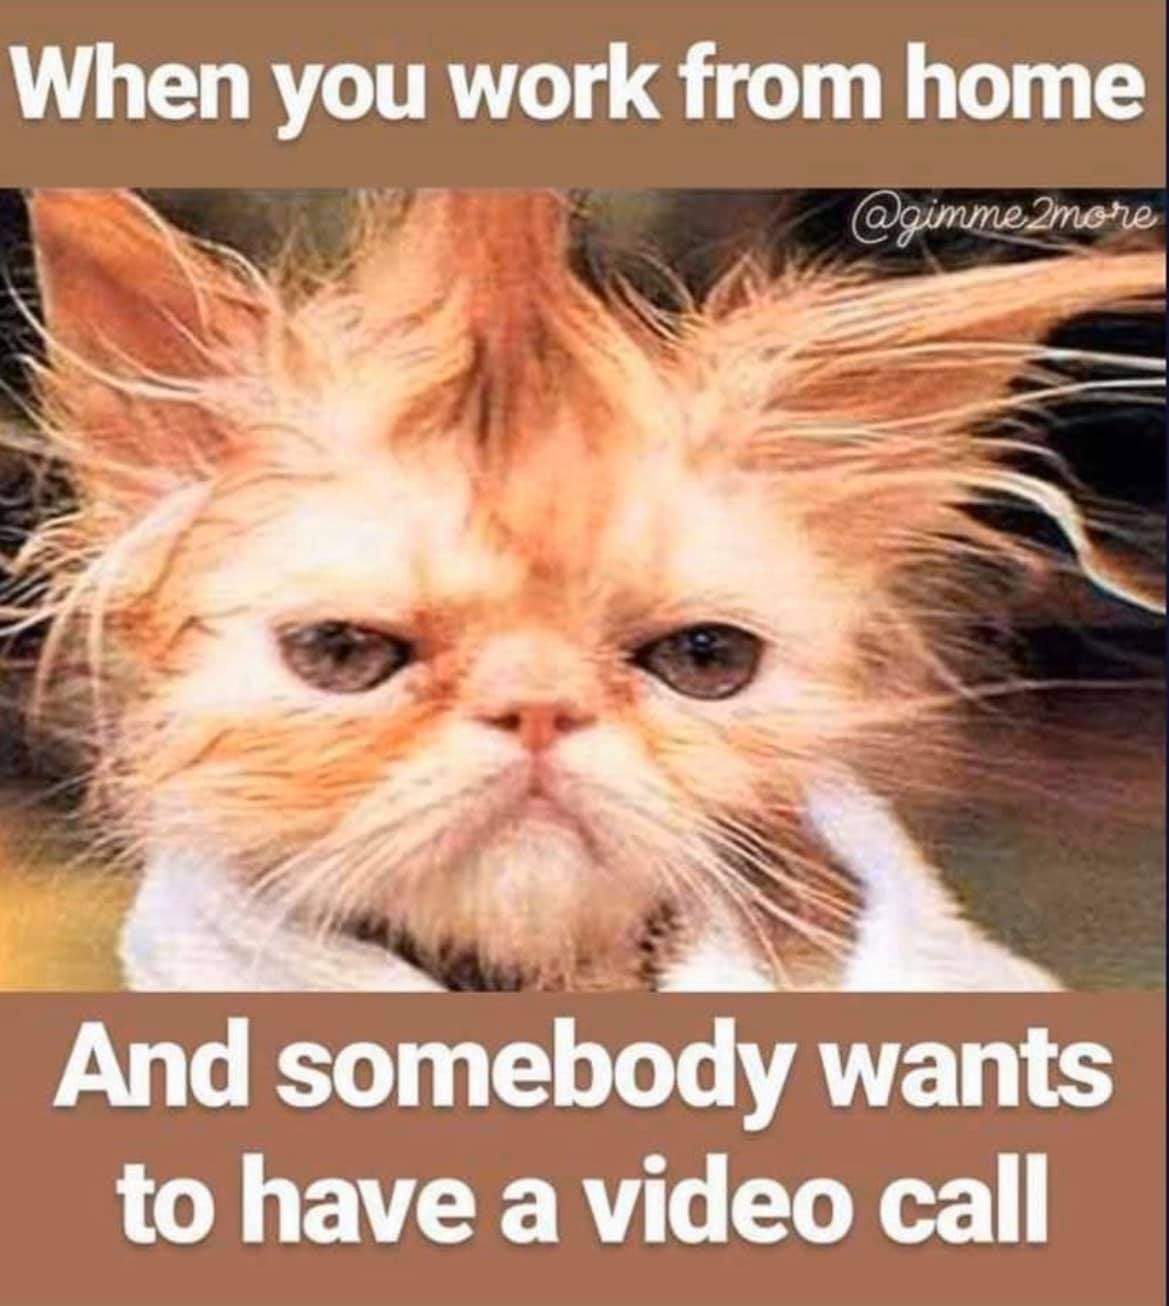 Pin By Dubby On Animal Memes Working From Home Meme Funny Funny Animal Pictures